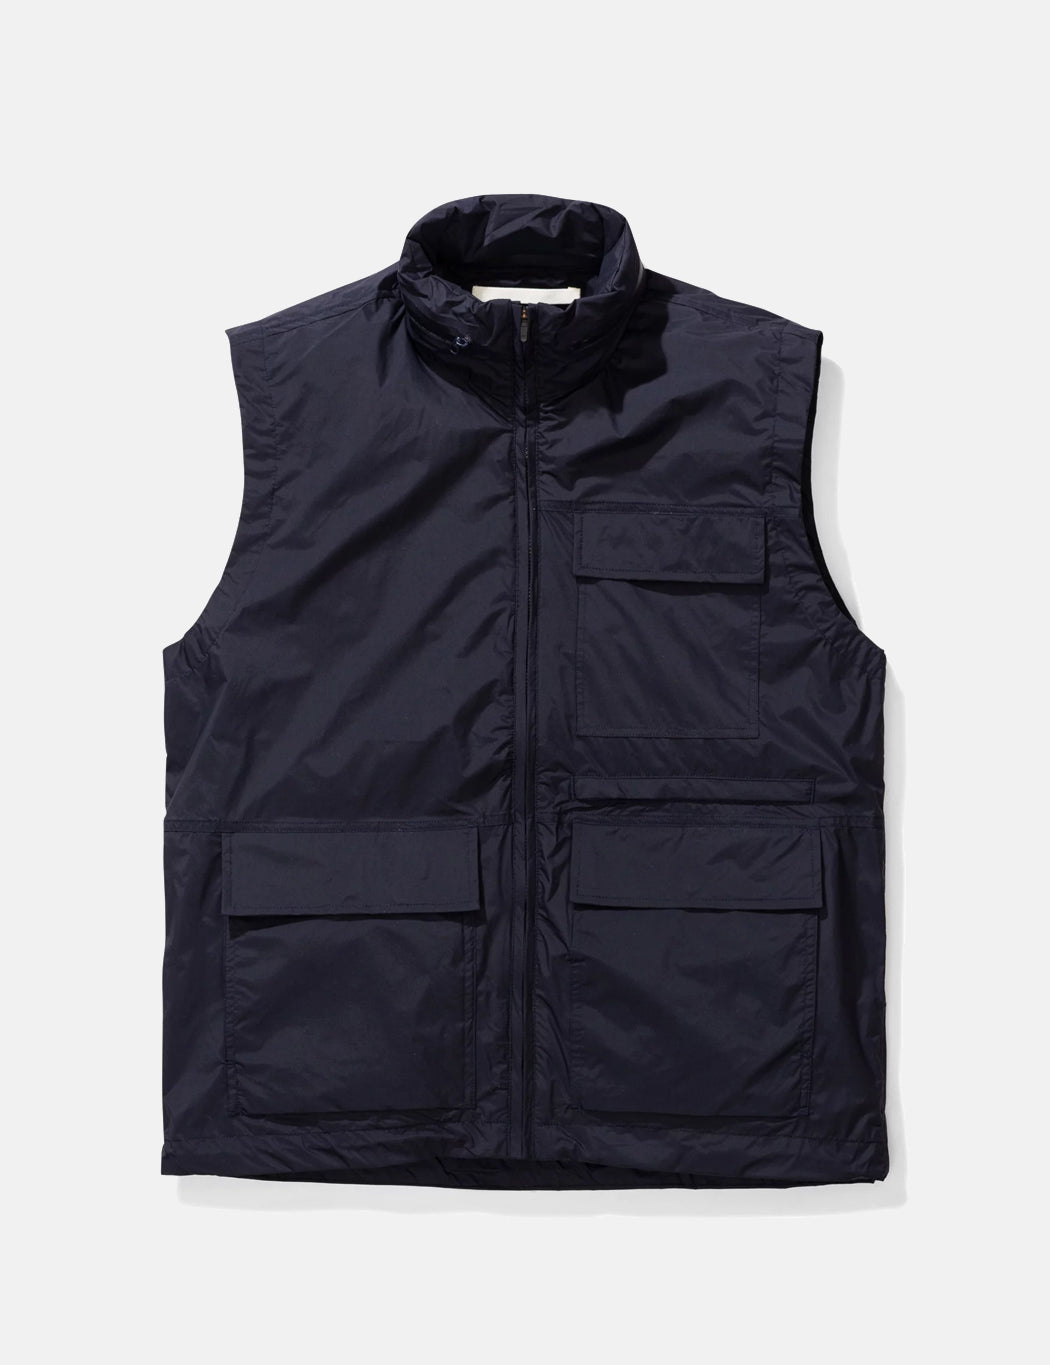 Norse Projects Birkholm Gilet (Shell) - Dark Navy Blue Note the gilet is a shell garment with no ins